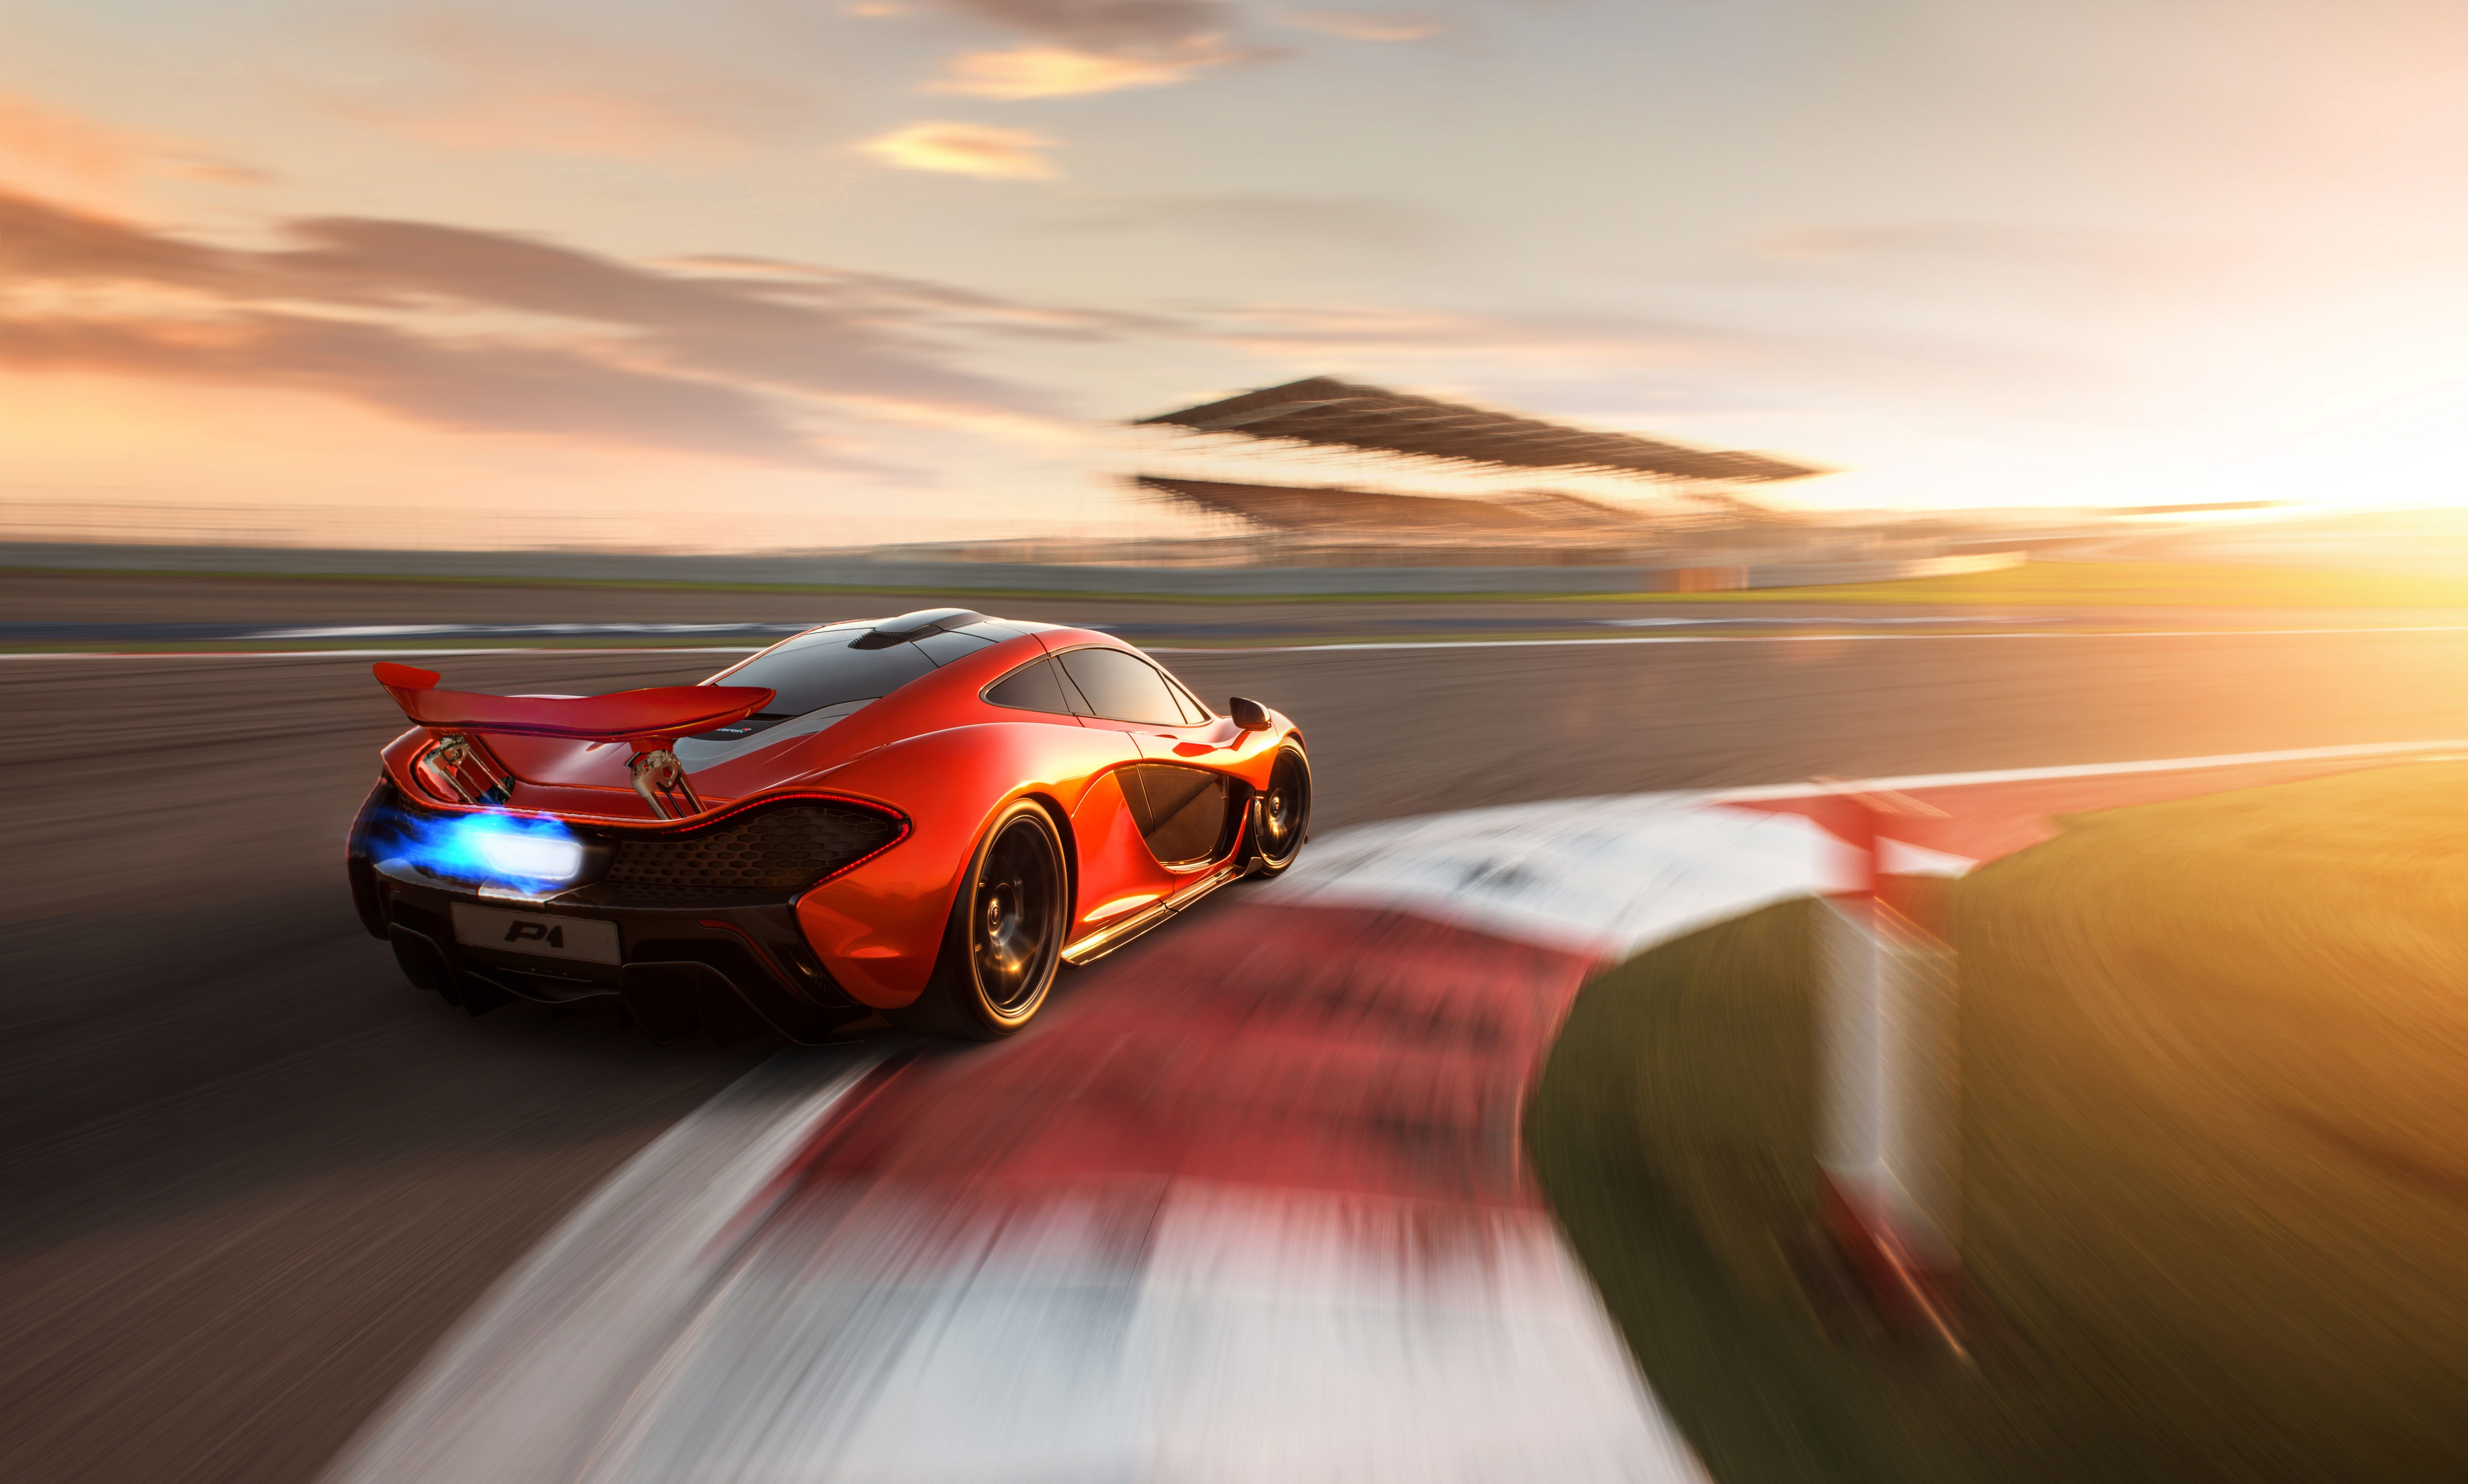 Mclaren P1 On Track 8k, HD Cars, 4k Wallpapers, Images ...